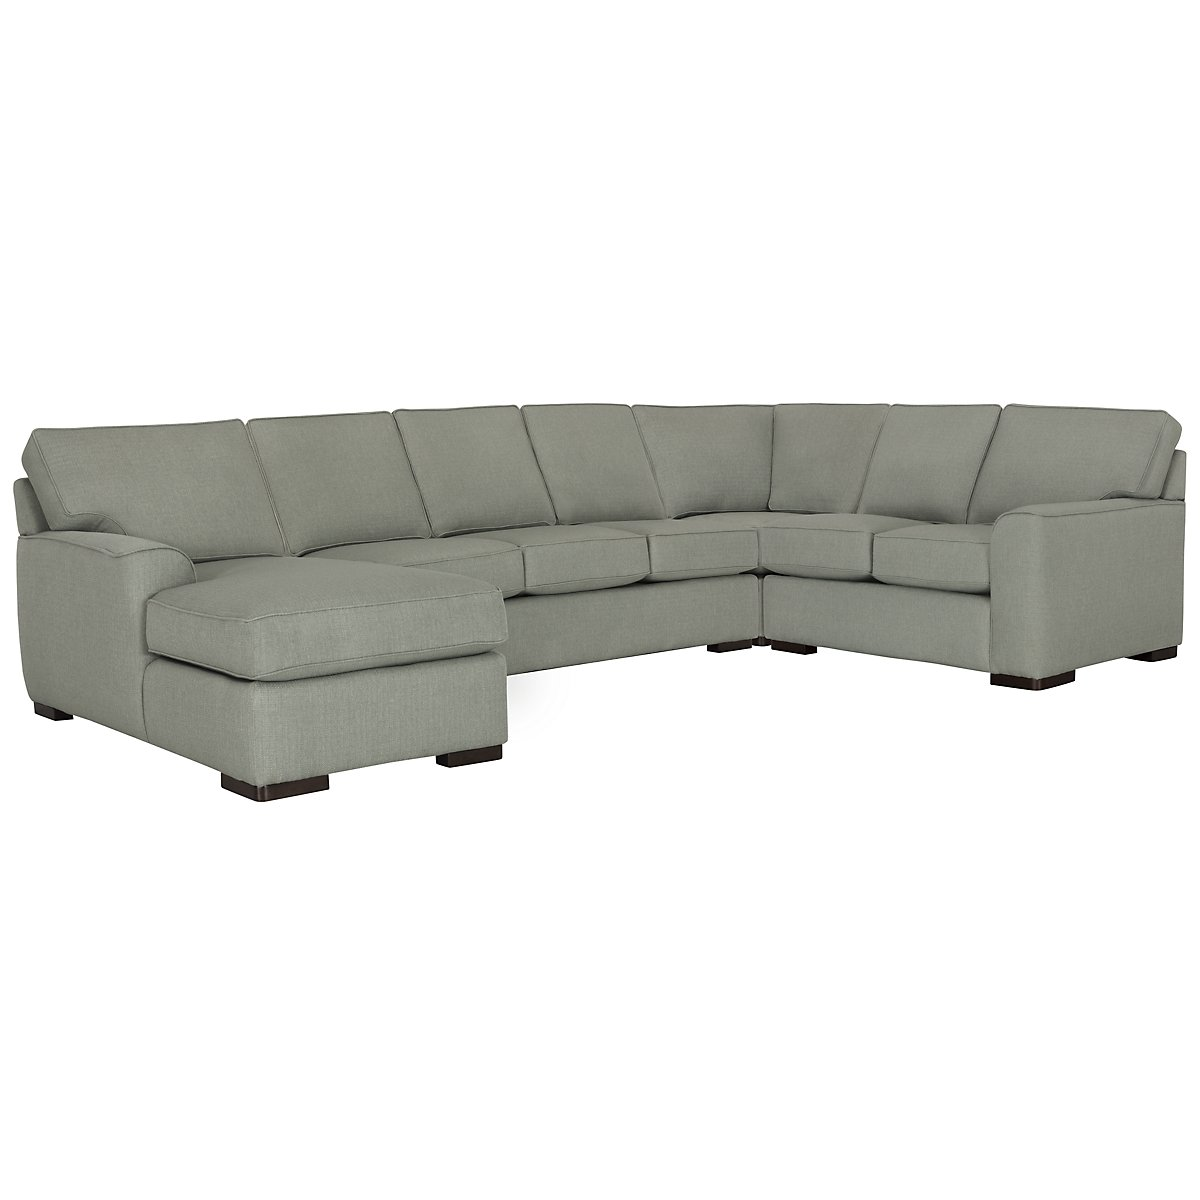 Austin Green Fabric Left Chaise Innerspring Sleeper Sectional